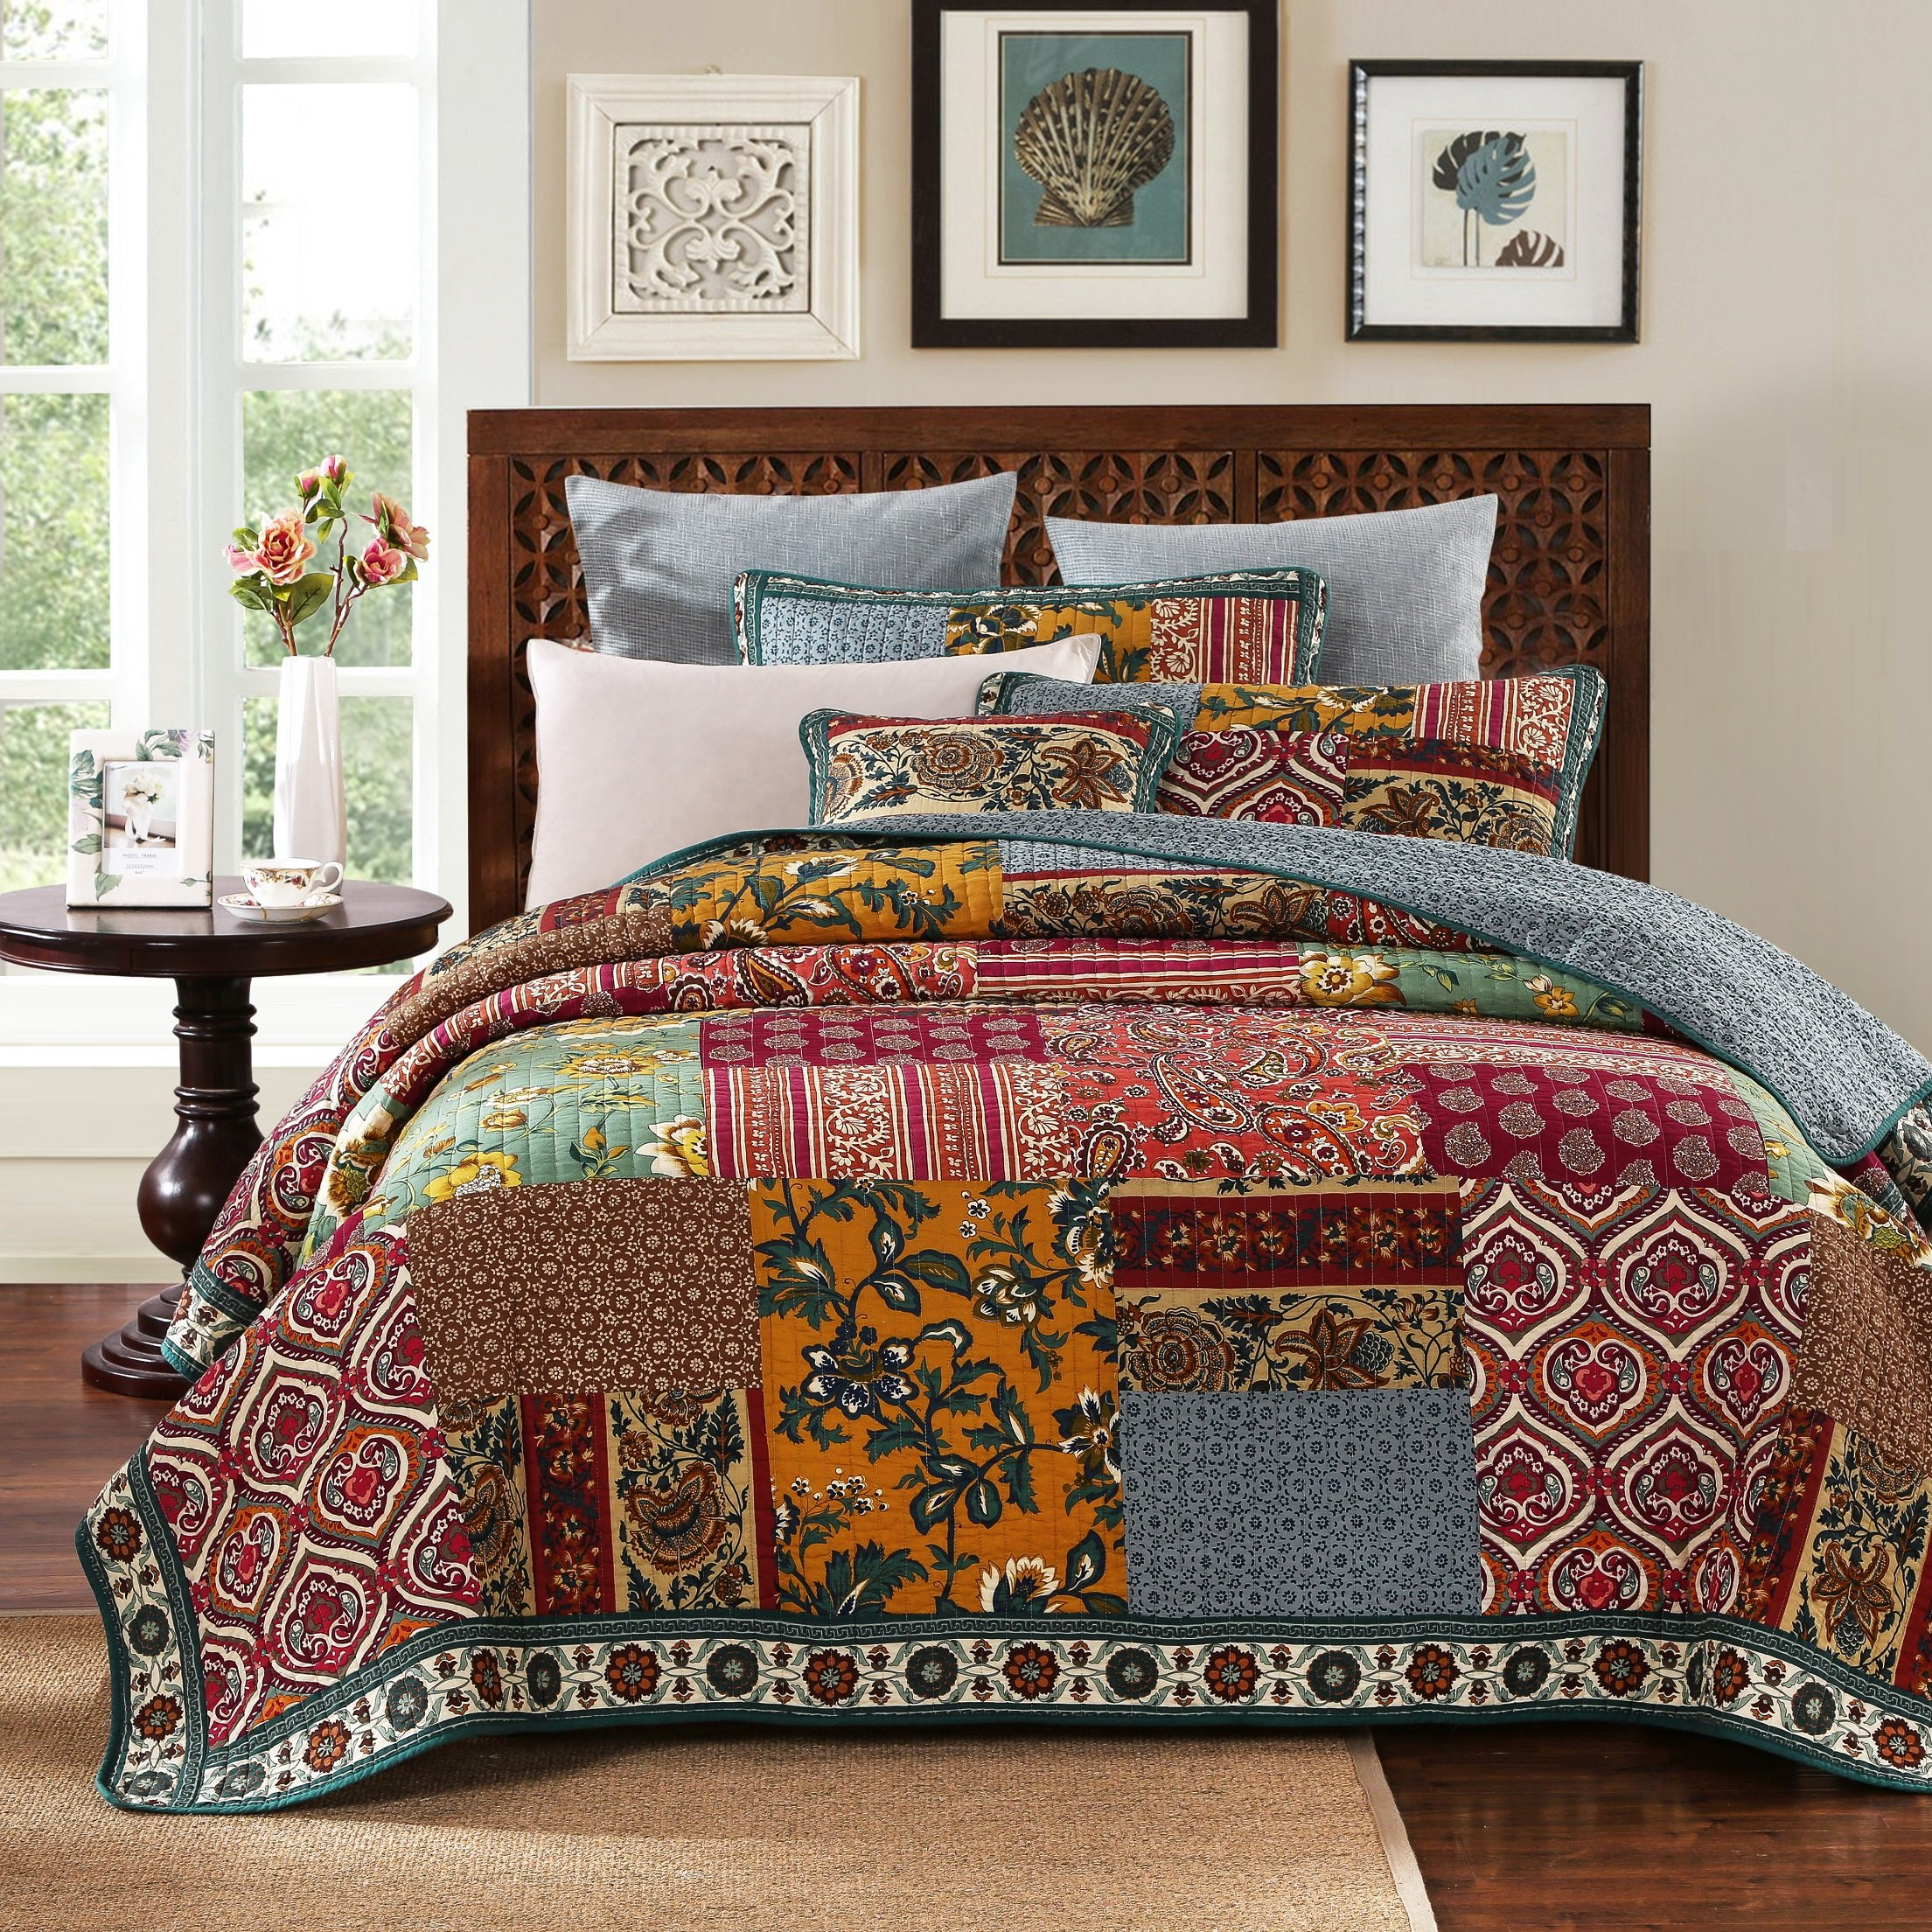 DaDa Bedding Collection Reversible Bohemian Real Patchwork Cotton Dark Elegance Floral Quilt Bedspread Set, Burgundy Red & Navy, Cal King, 3-Pieces